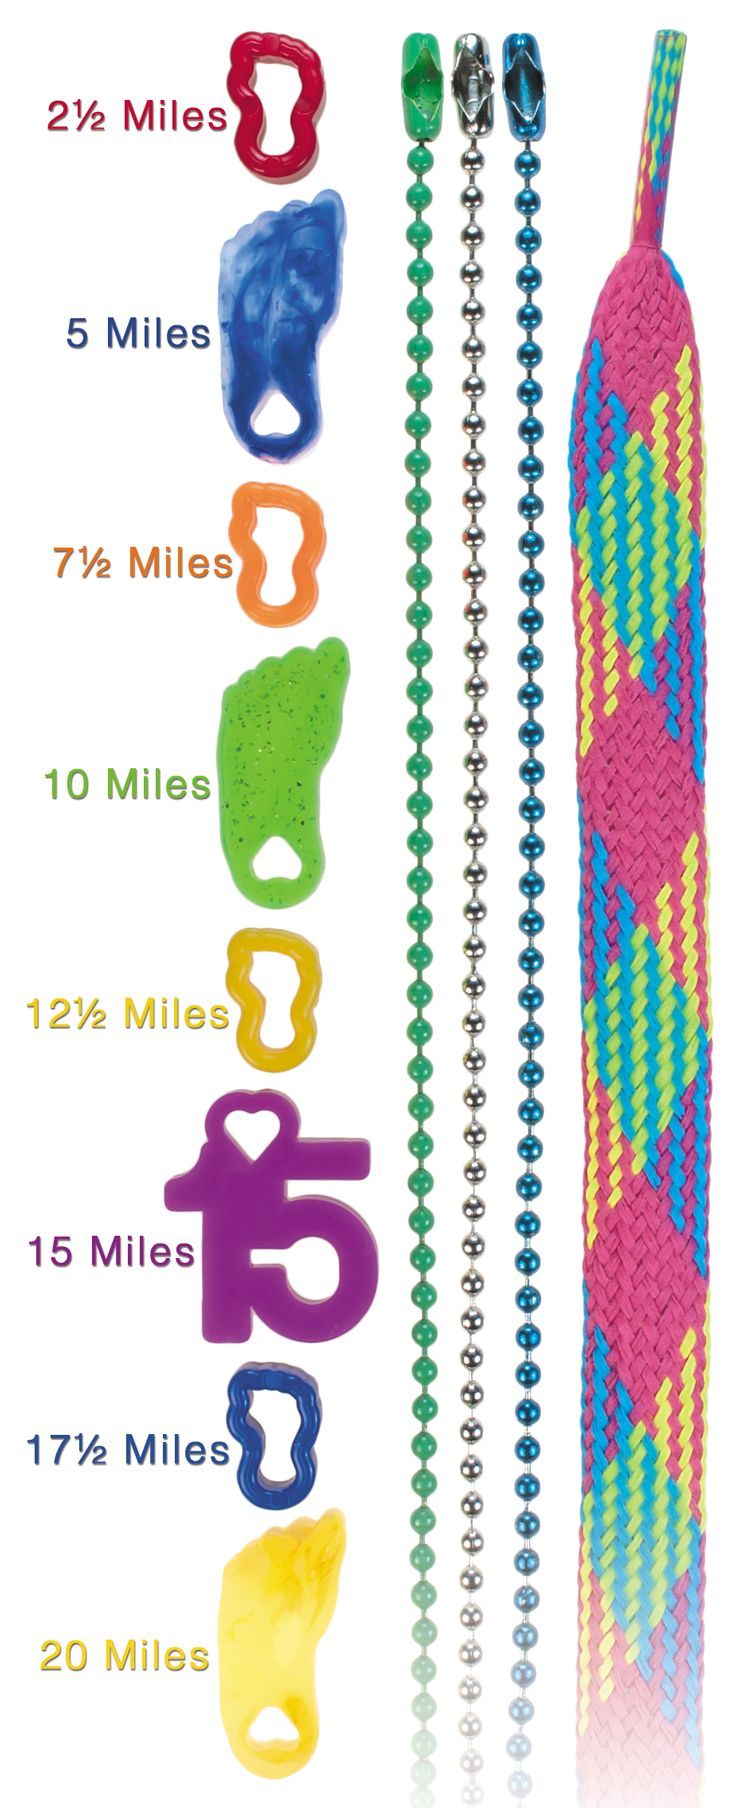 Whether Chains or Laces, 'Tween Toes, Toe Tokens, Twirl Toes, Numbers, and MORE - Your Students Rack Up the Miles, We've Got Your Rewards. Check Out the Variety at: http://www.fitnessfinders.net//Mileage-Club-s/322.htm